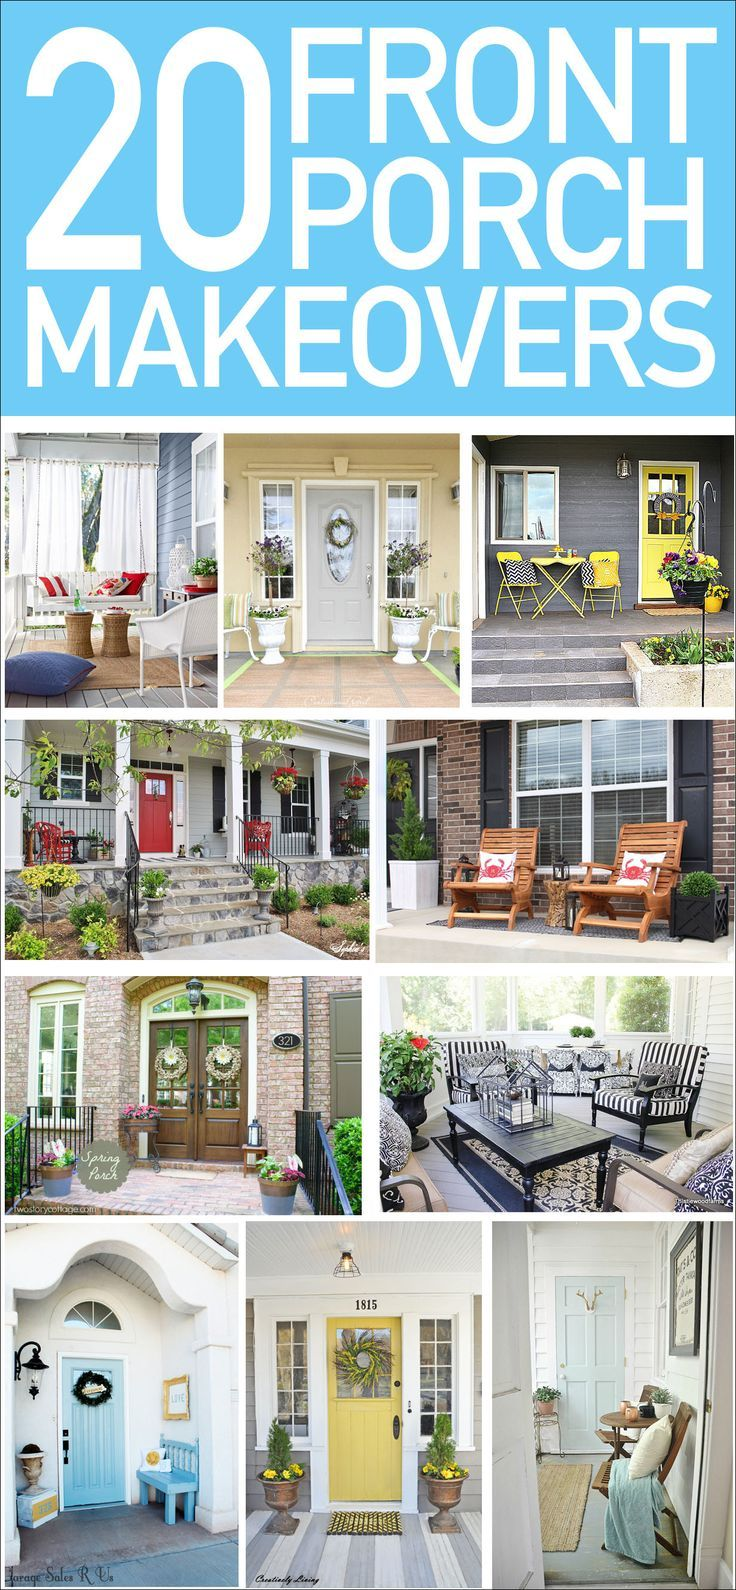 Seriously love these 20 front porch makeovers. Perfect ideas for Spring and Summ...